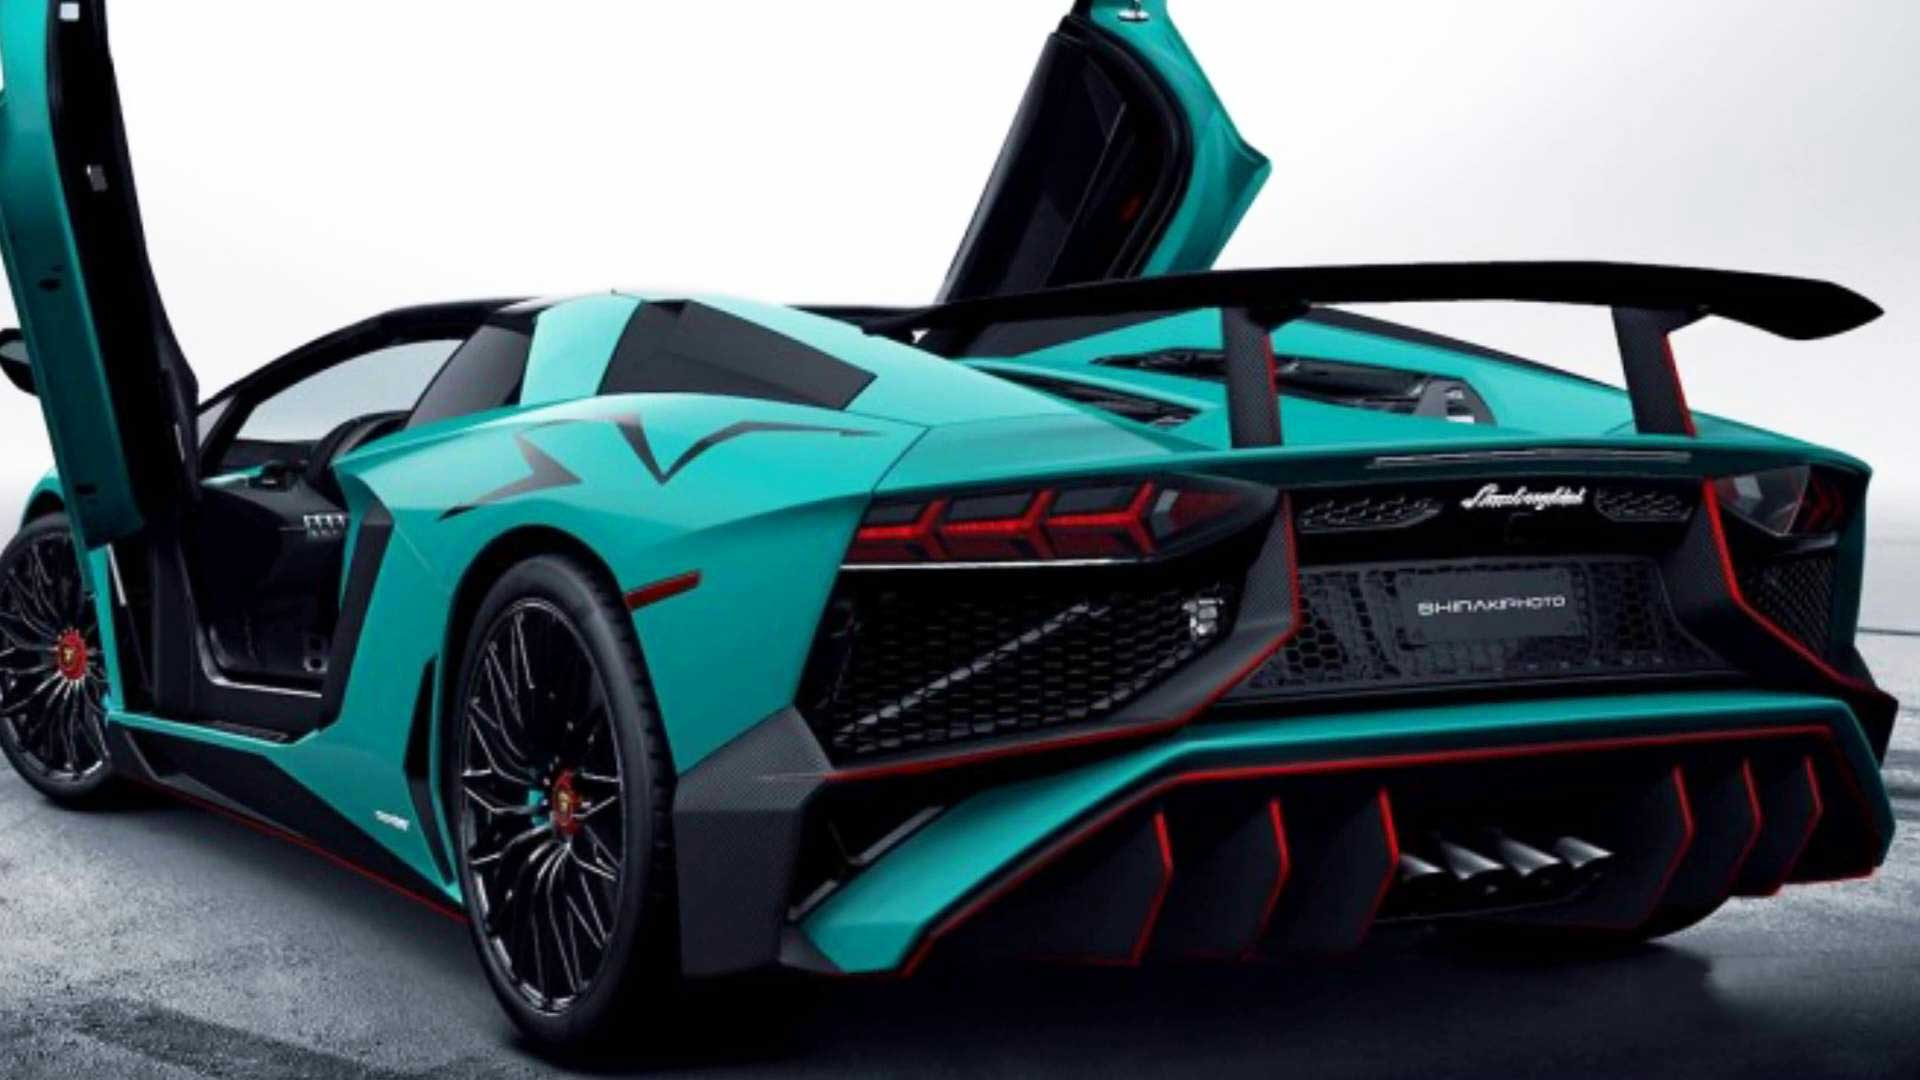 The 2016 Lamborghini Aventador SuperVeloce